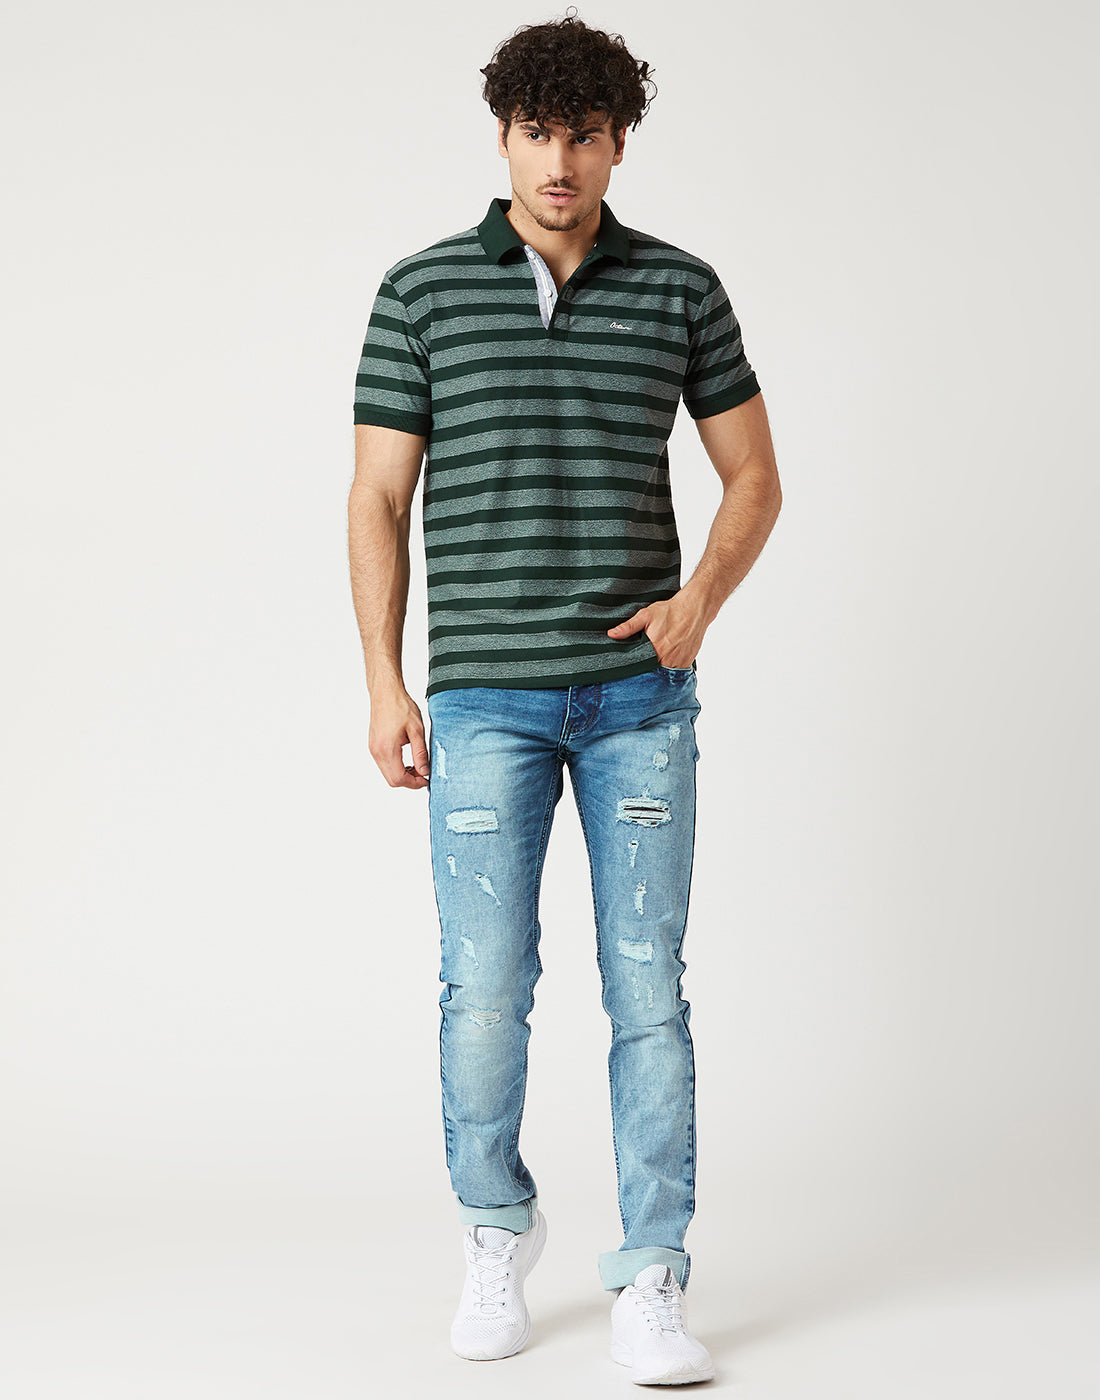 Octave Men Green Striped Polo Tshirt